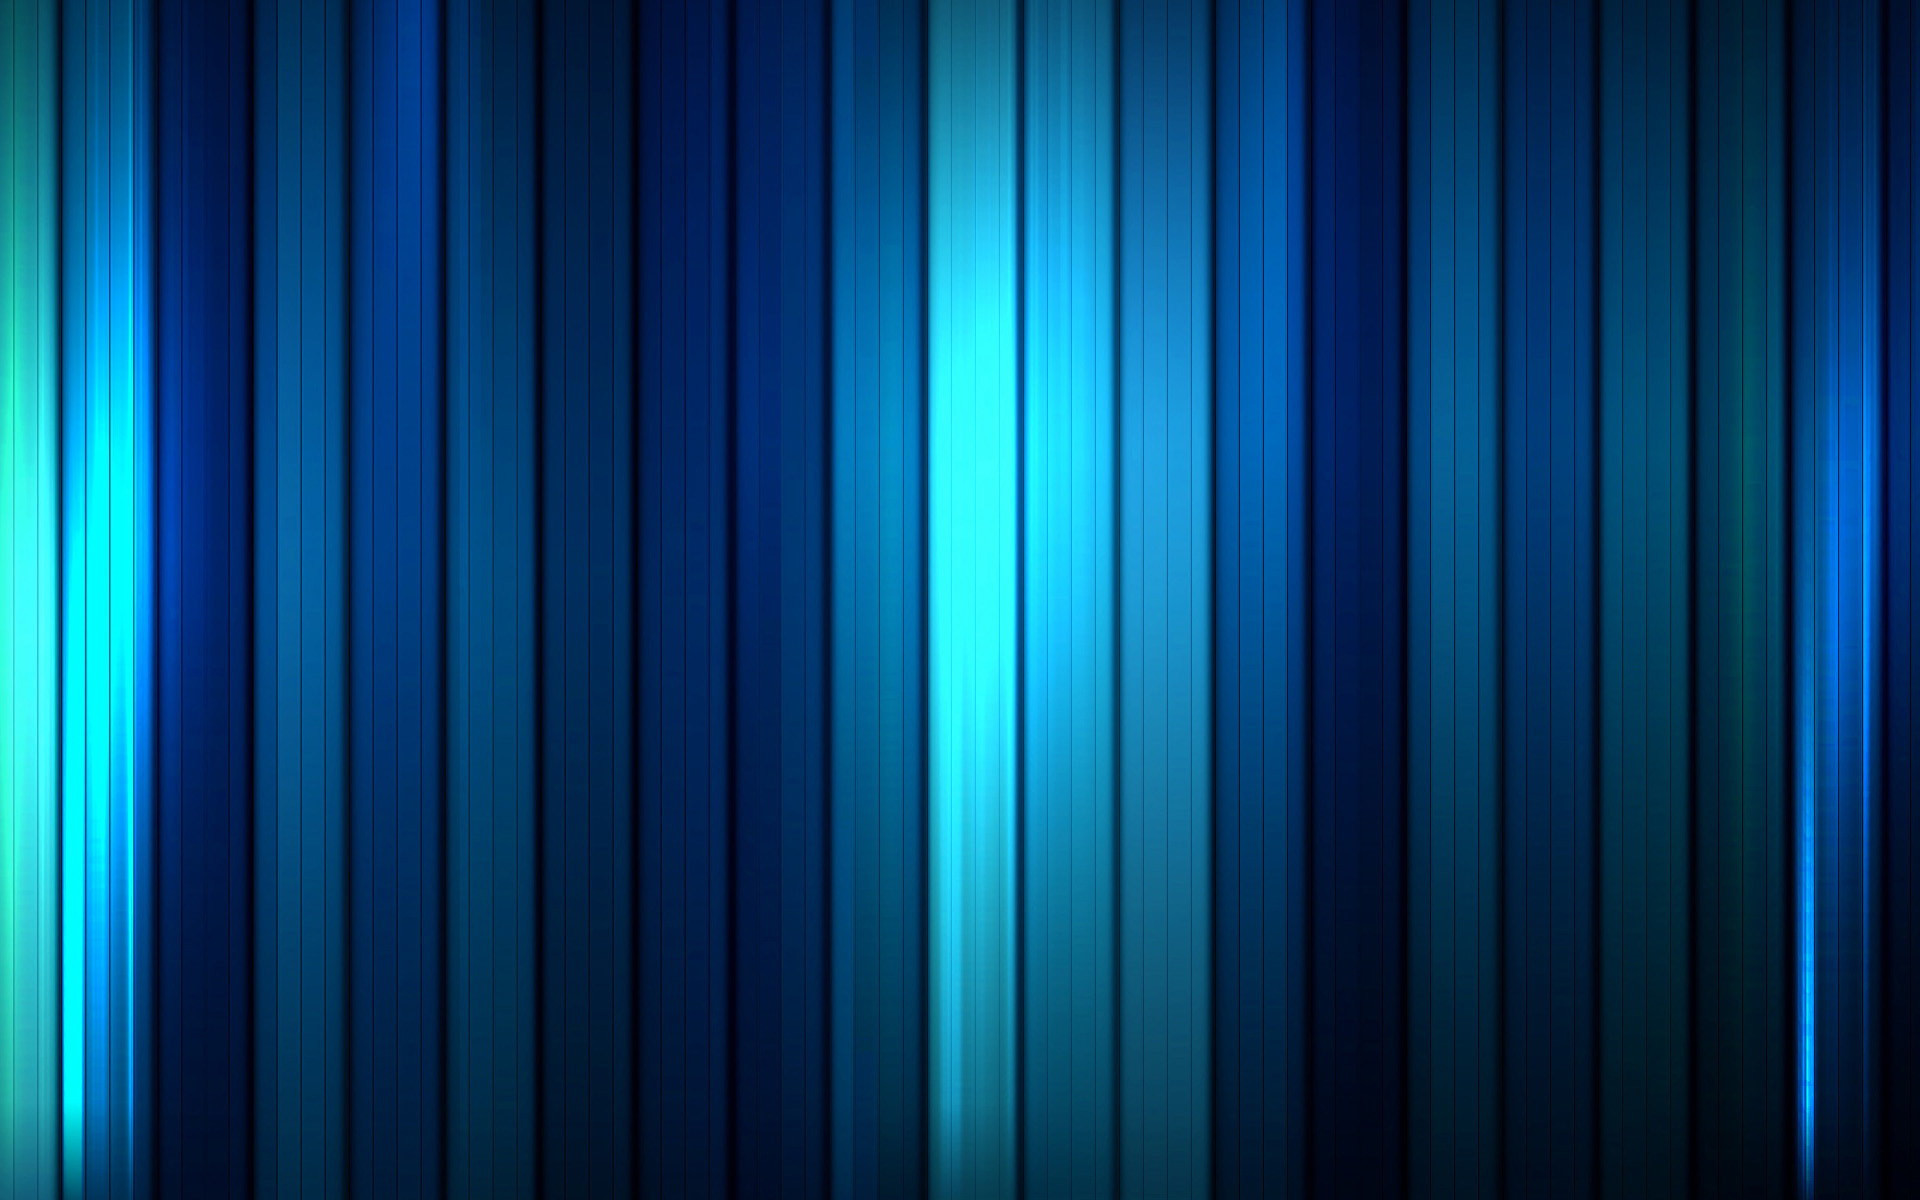 Blue Hipster Tumblr Backgrounds